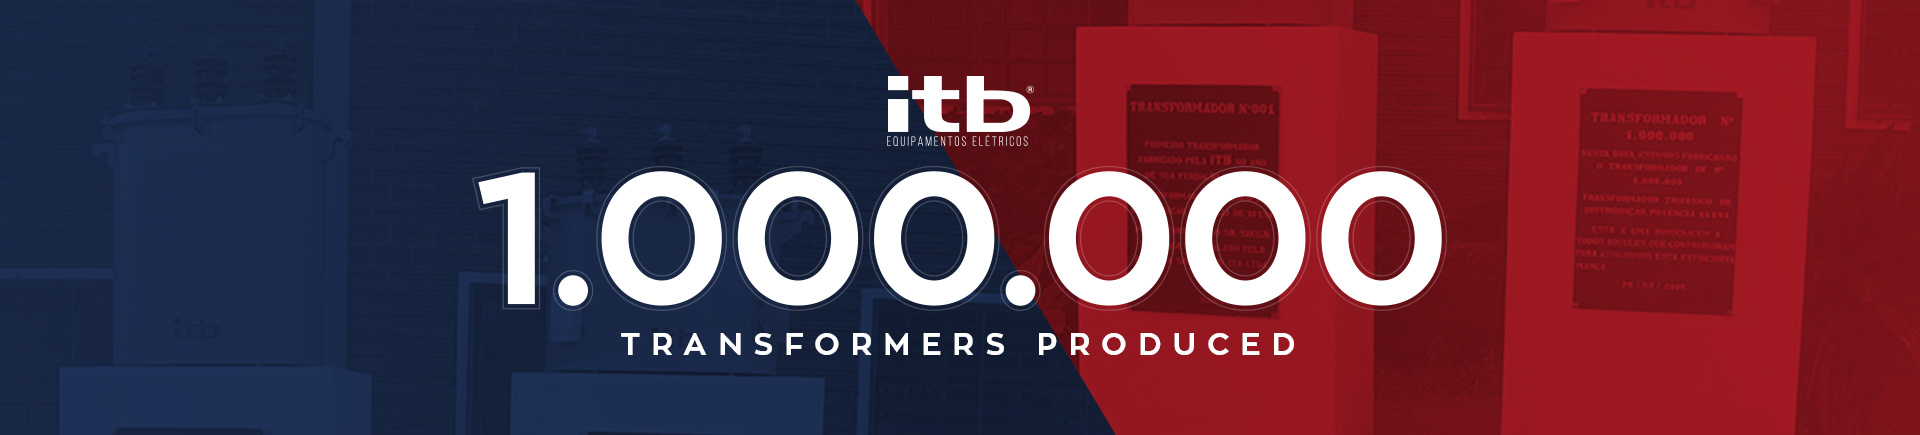 transformers-itb-million-produced